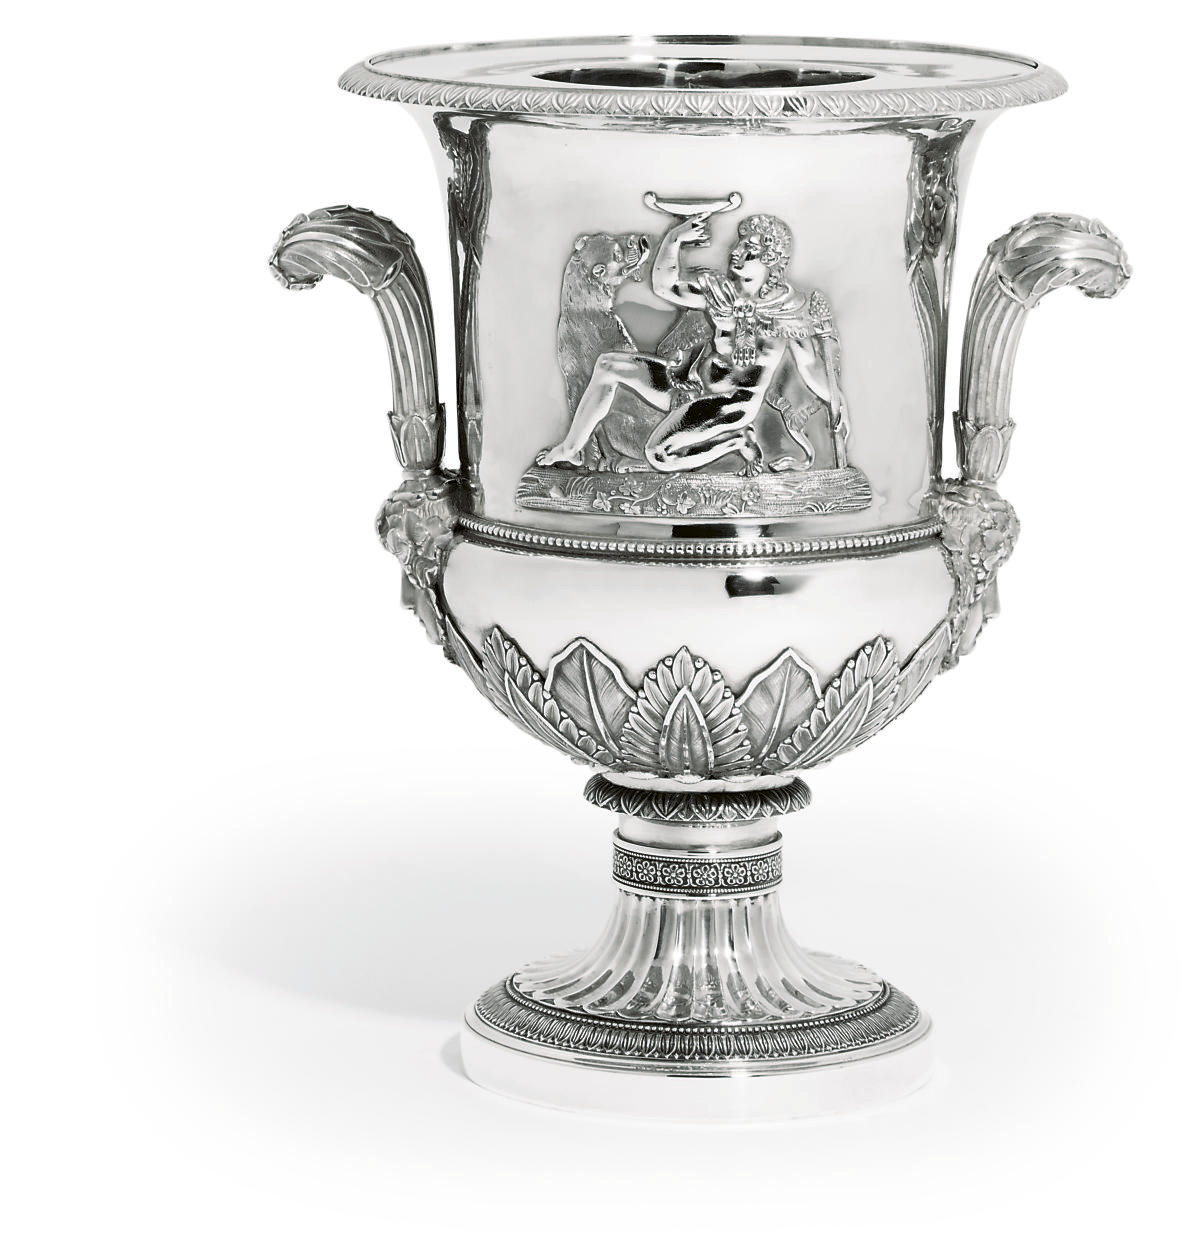 A FRENCH SILVER WINE-COOLER AND COLLAR